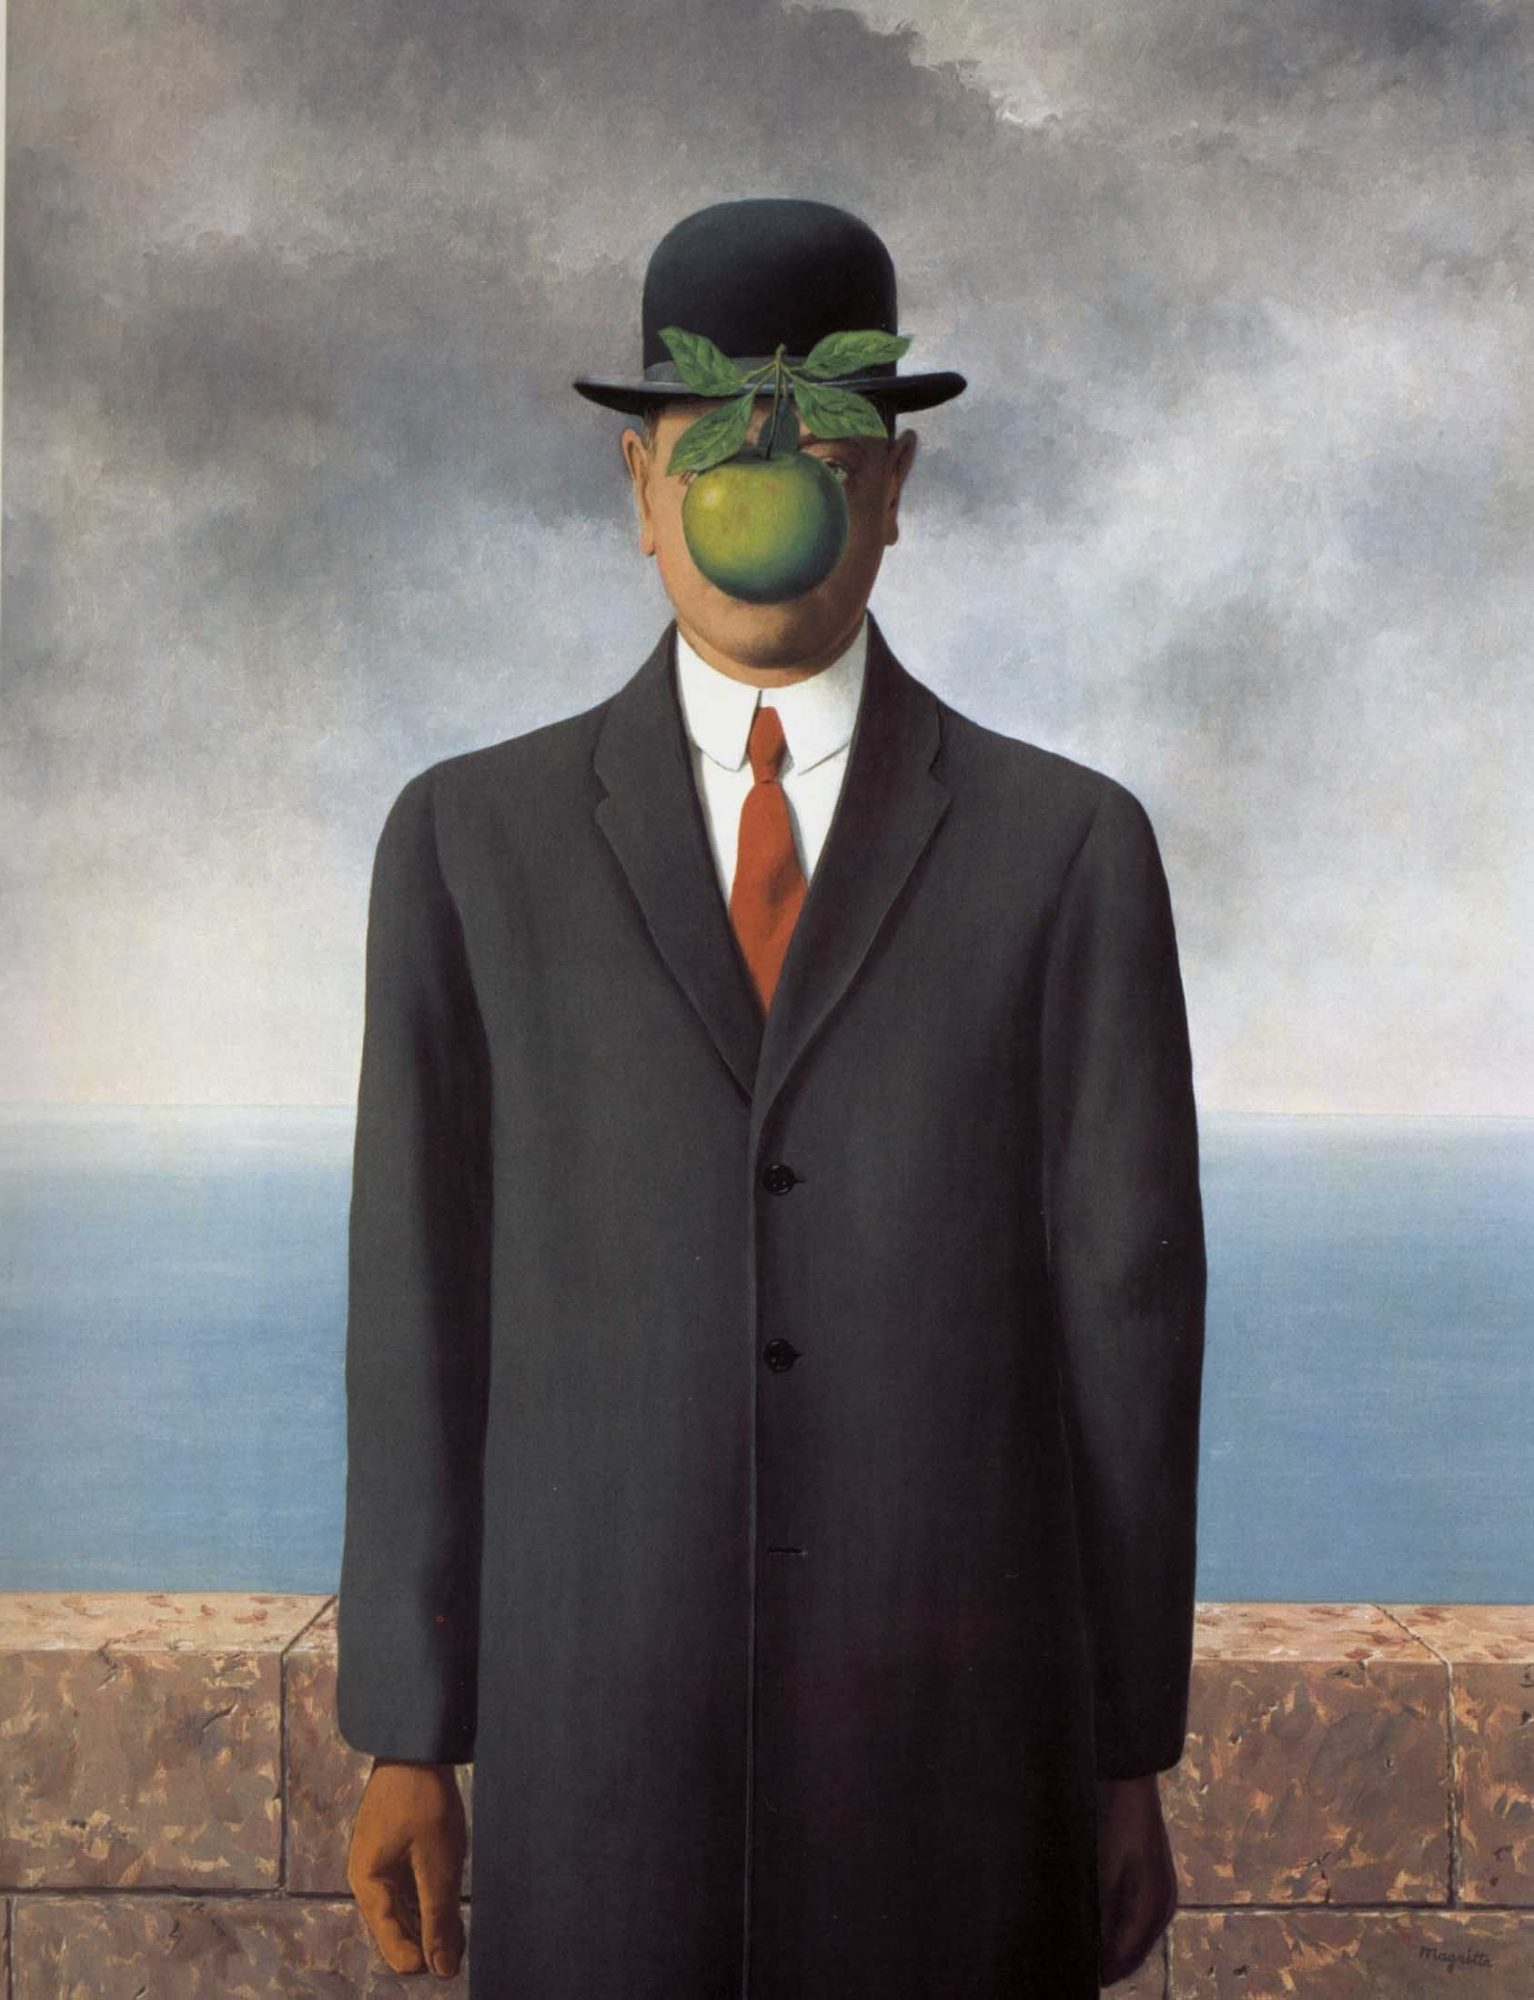 Son of man by Rene Magritte, green apple with red tie.